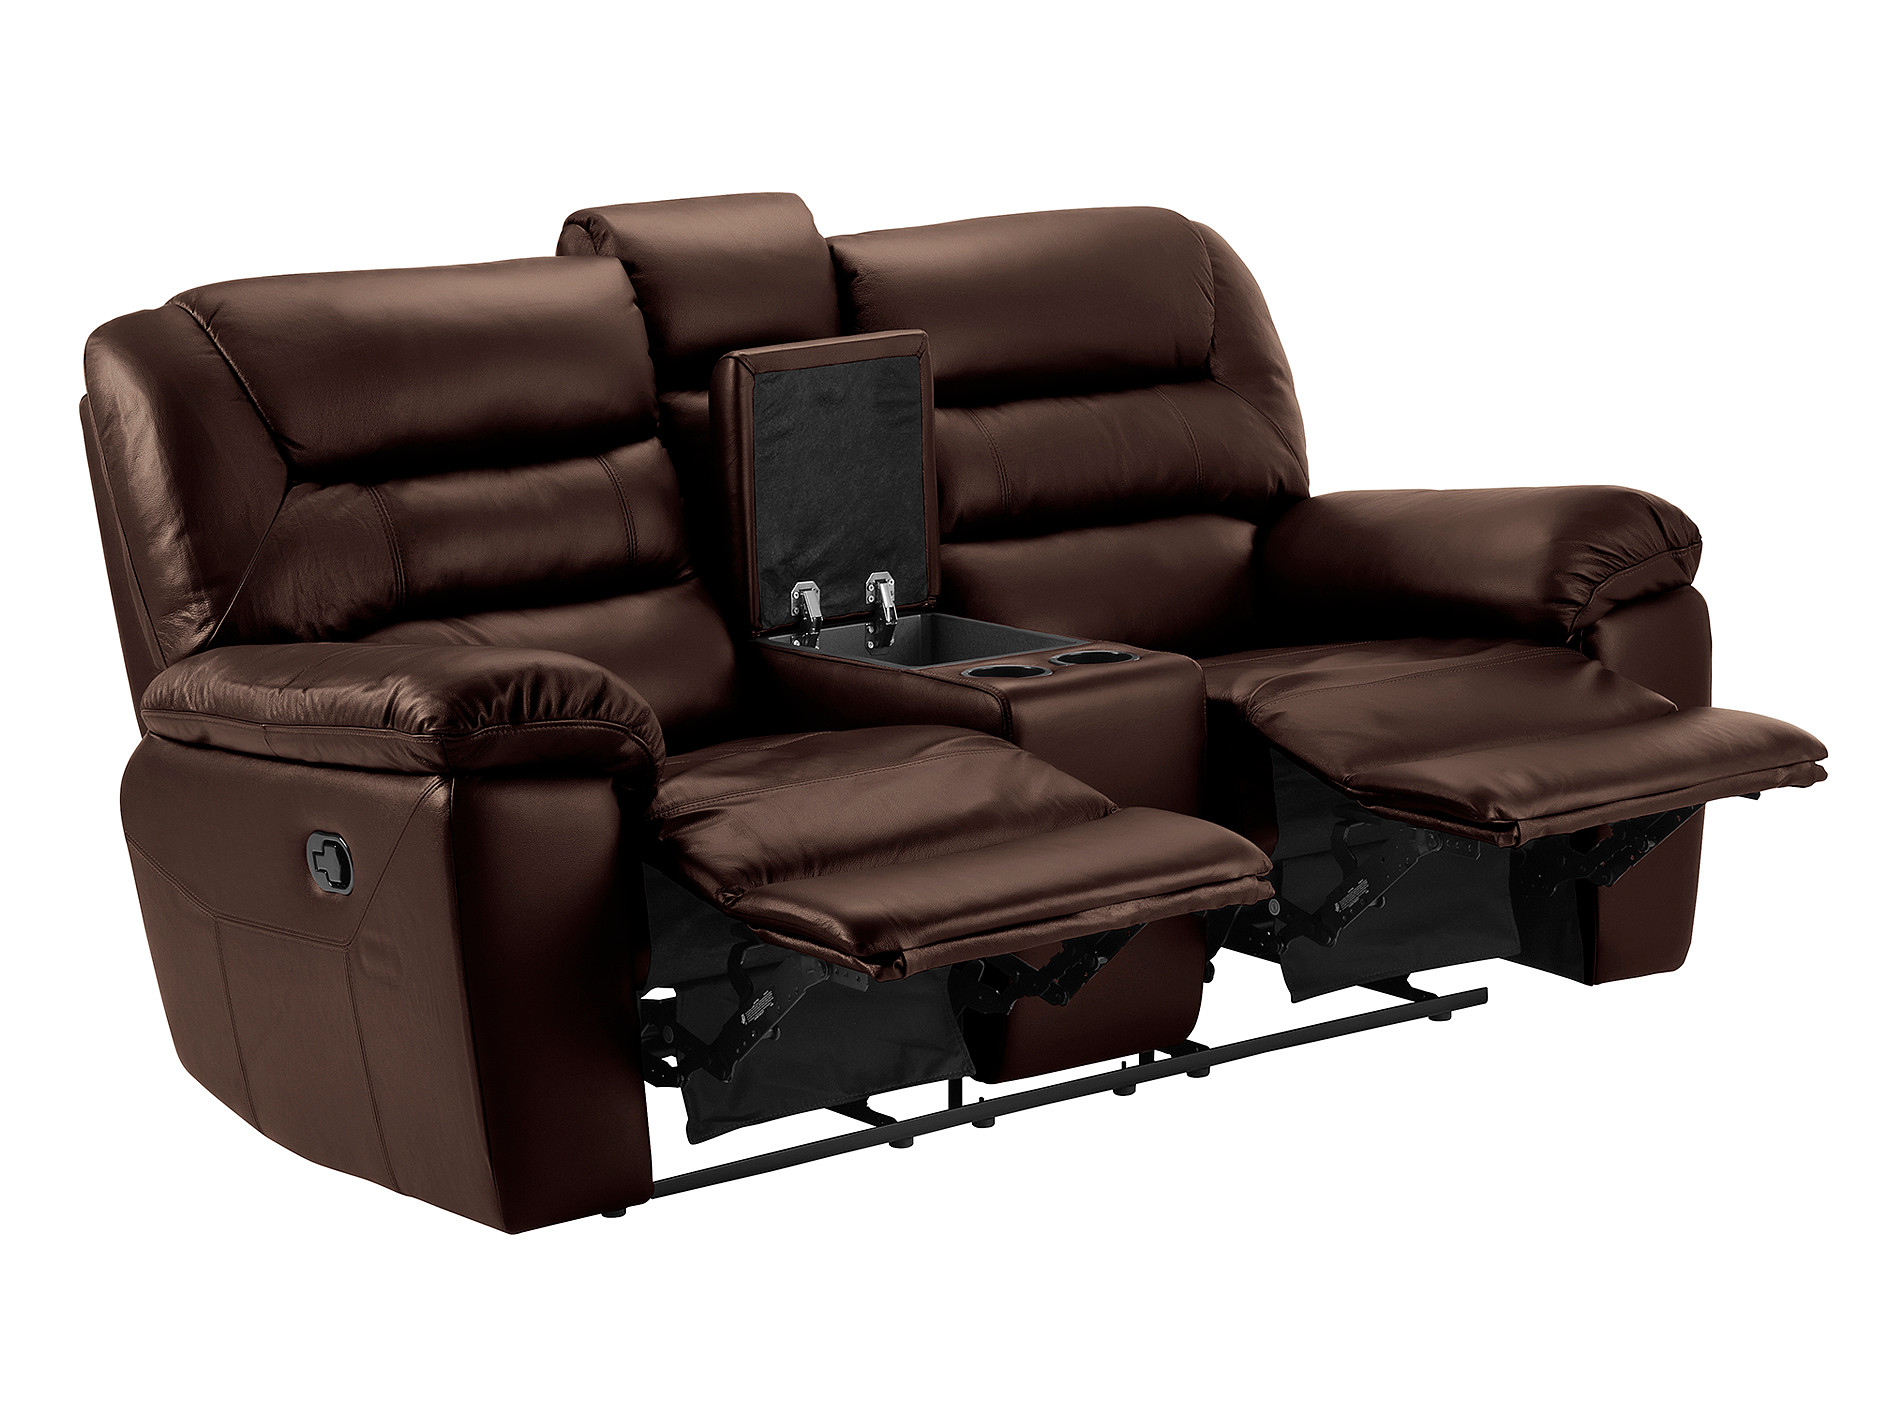 devon small sofa with manual recliners 2 tone brown leather. Black Bedroom Furniture Sets. Home Design Ideas